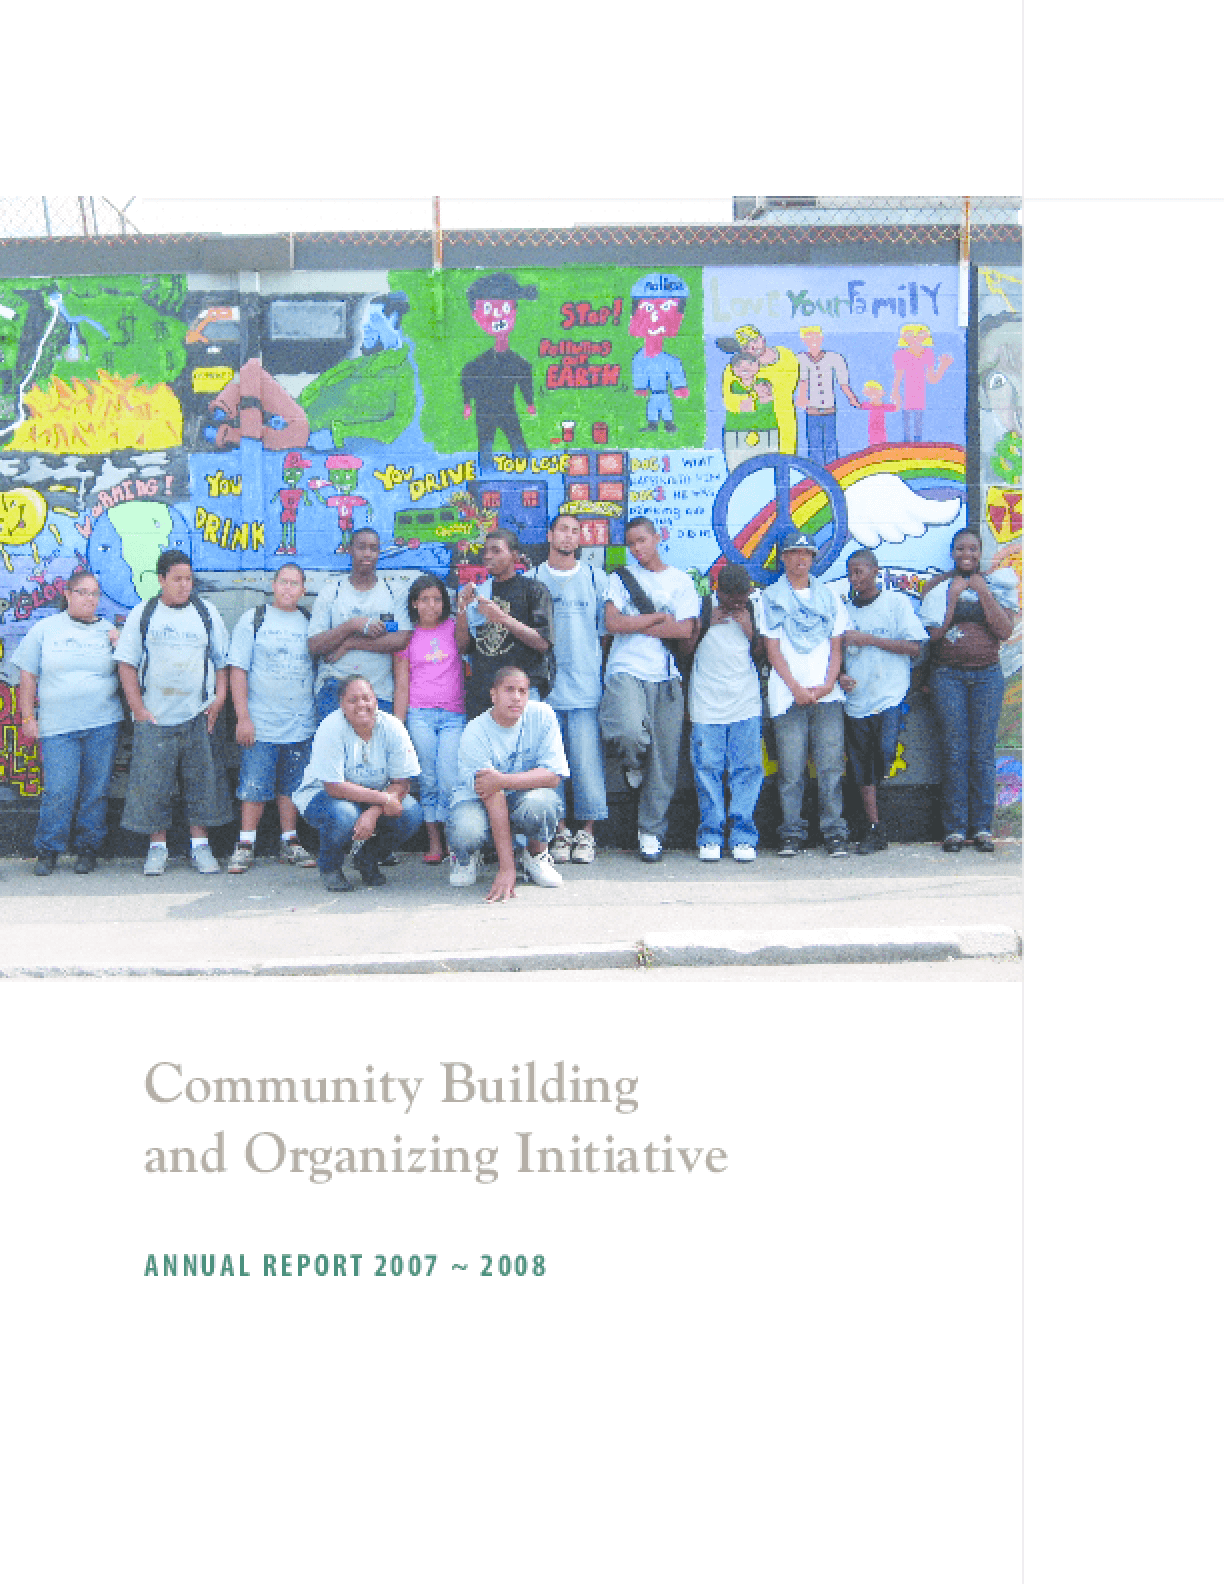 Community Building and Organizing Initiative Annual Report 2007-2008